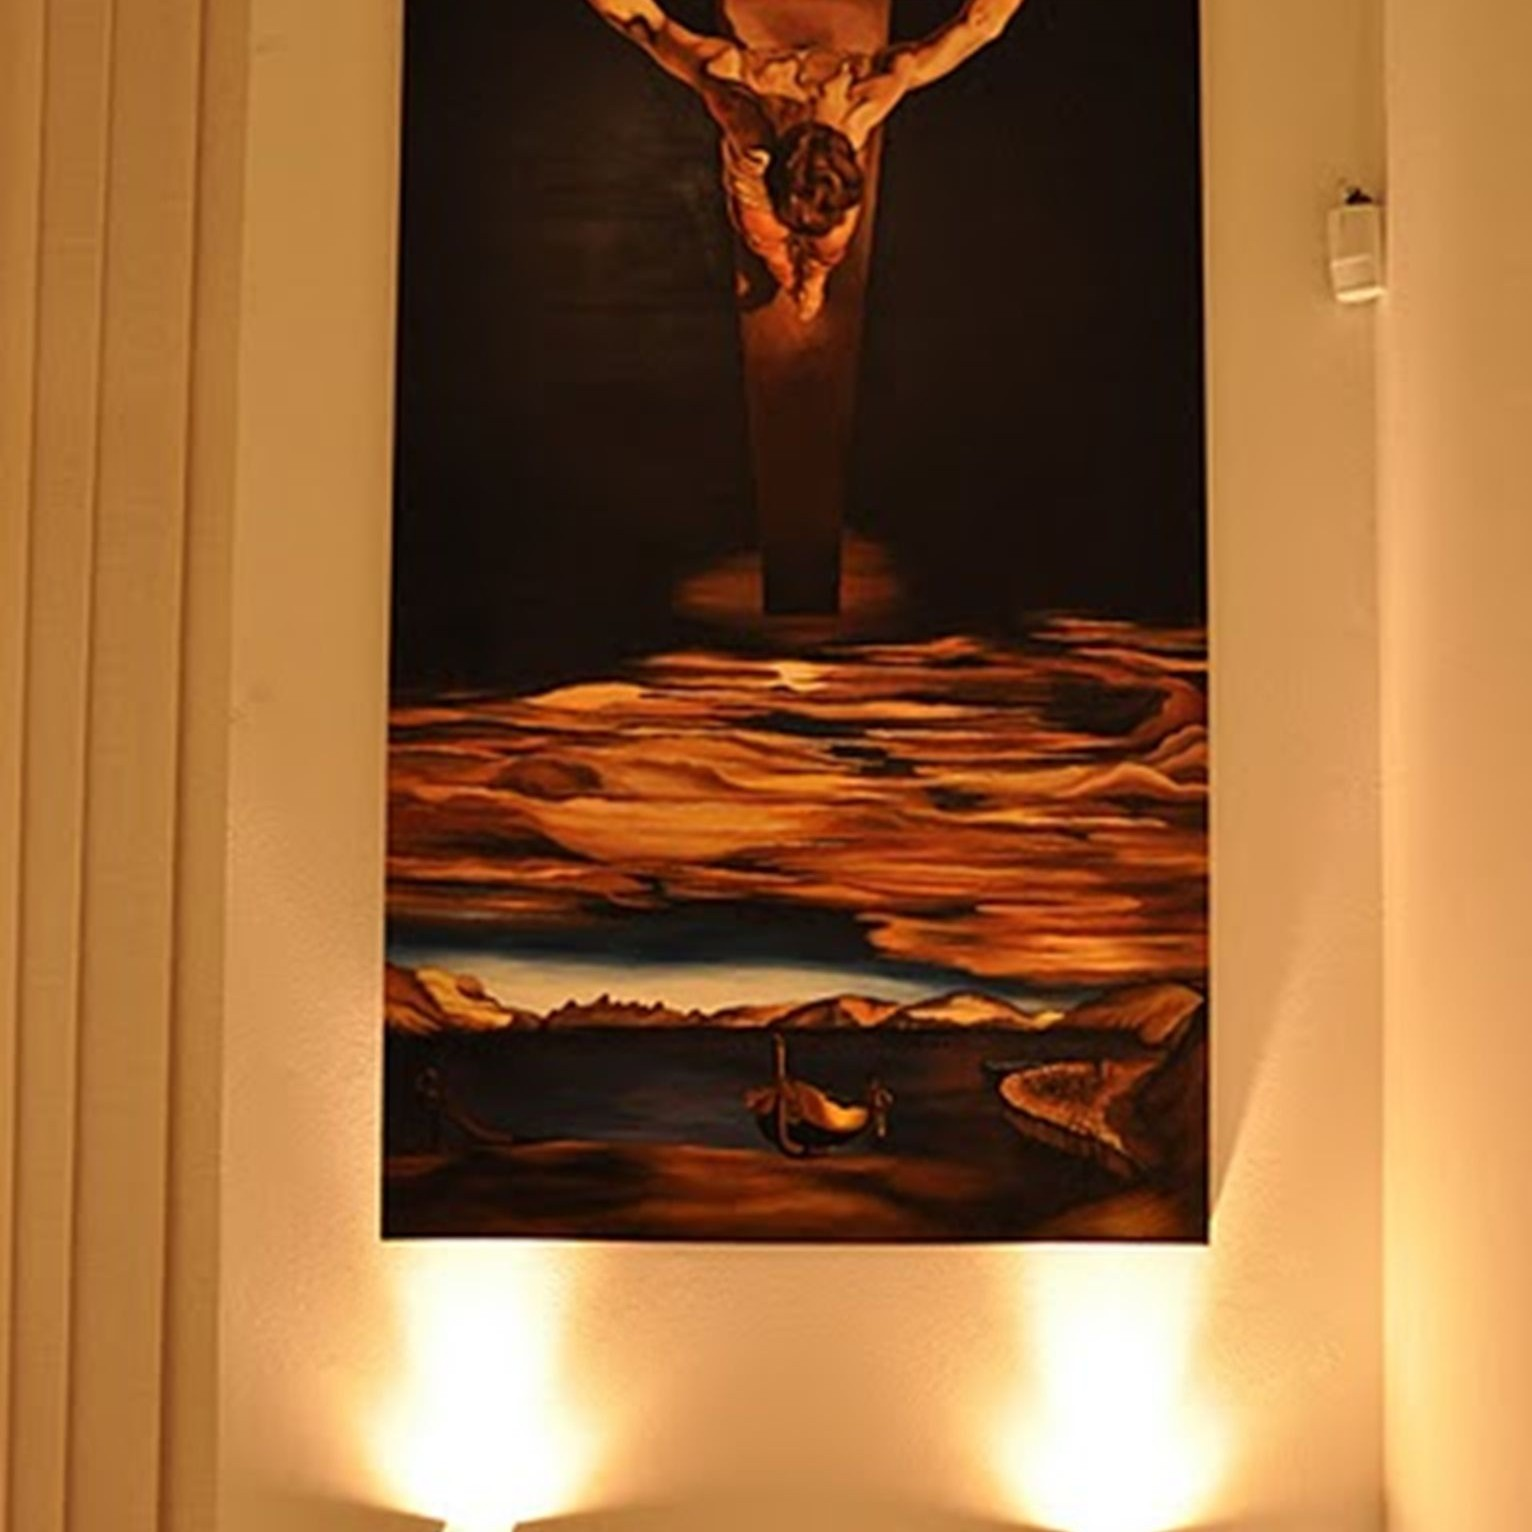 Obraz - Christ of saint john of the cross - 200cm x 100cm